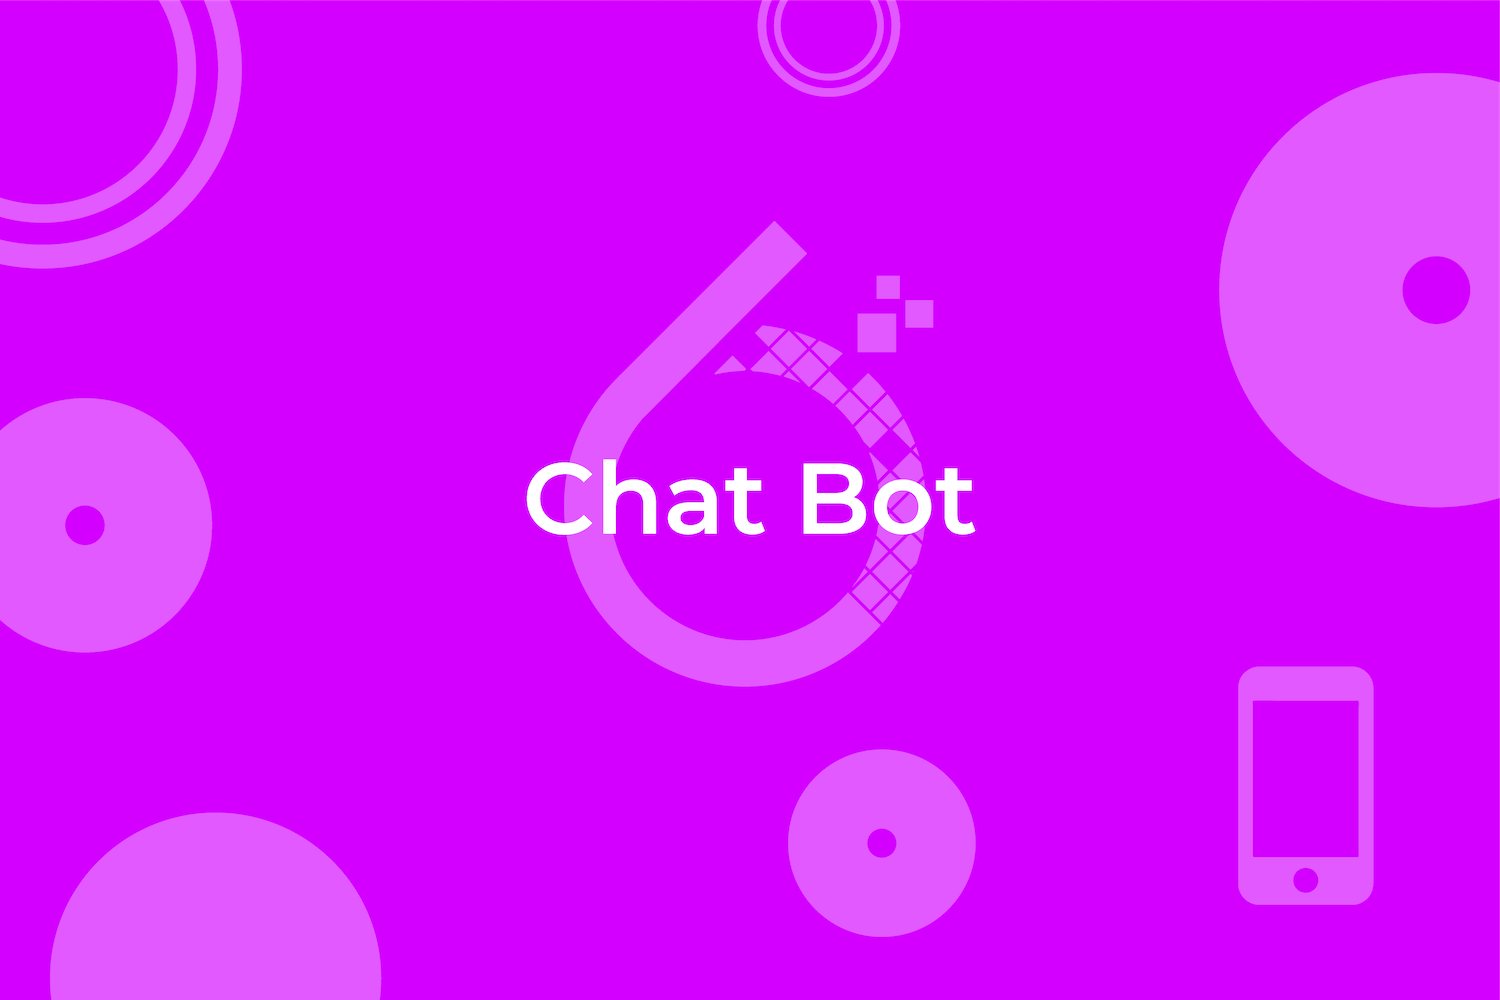 6teen30 Digital - Convergent Mobile Marketing - ChatBot